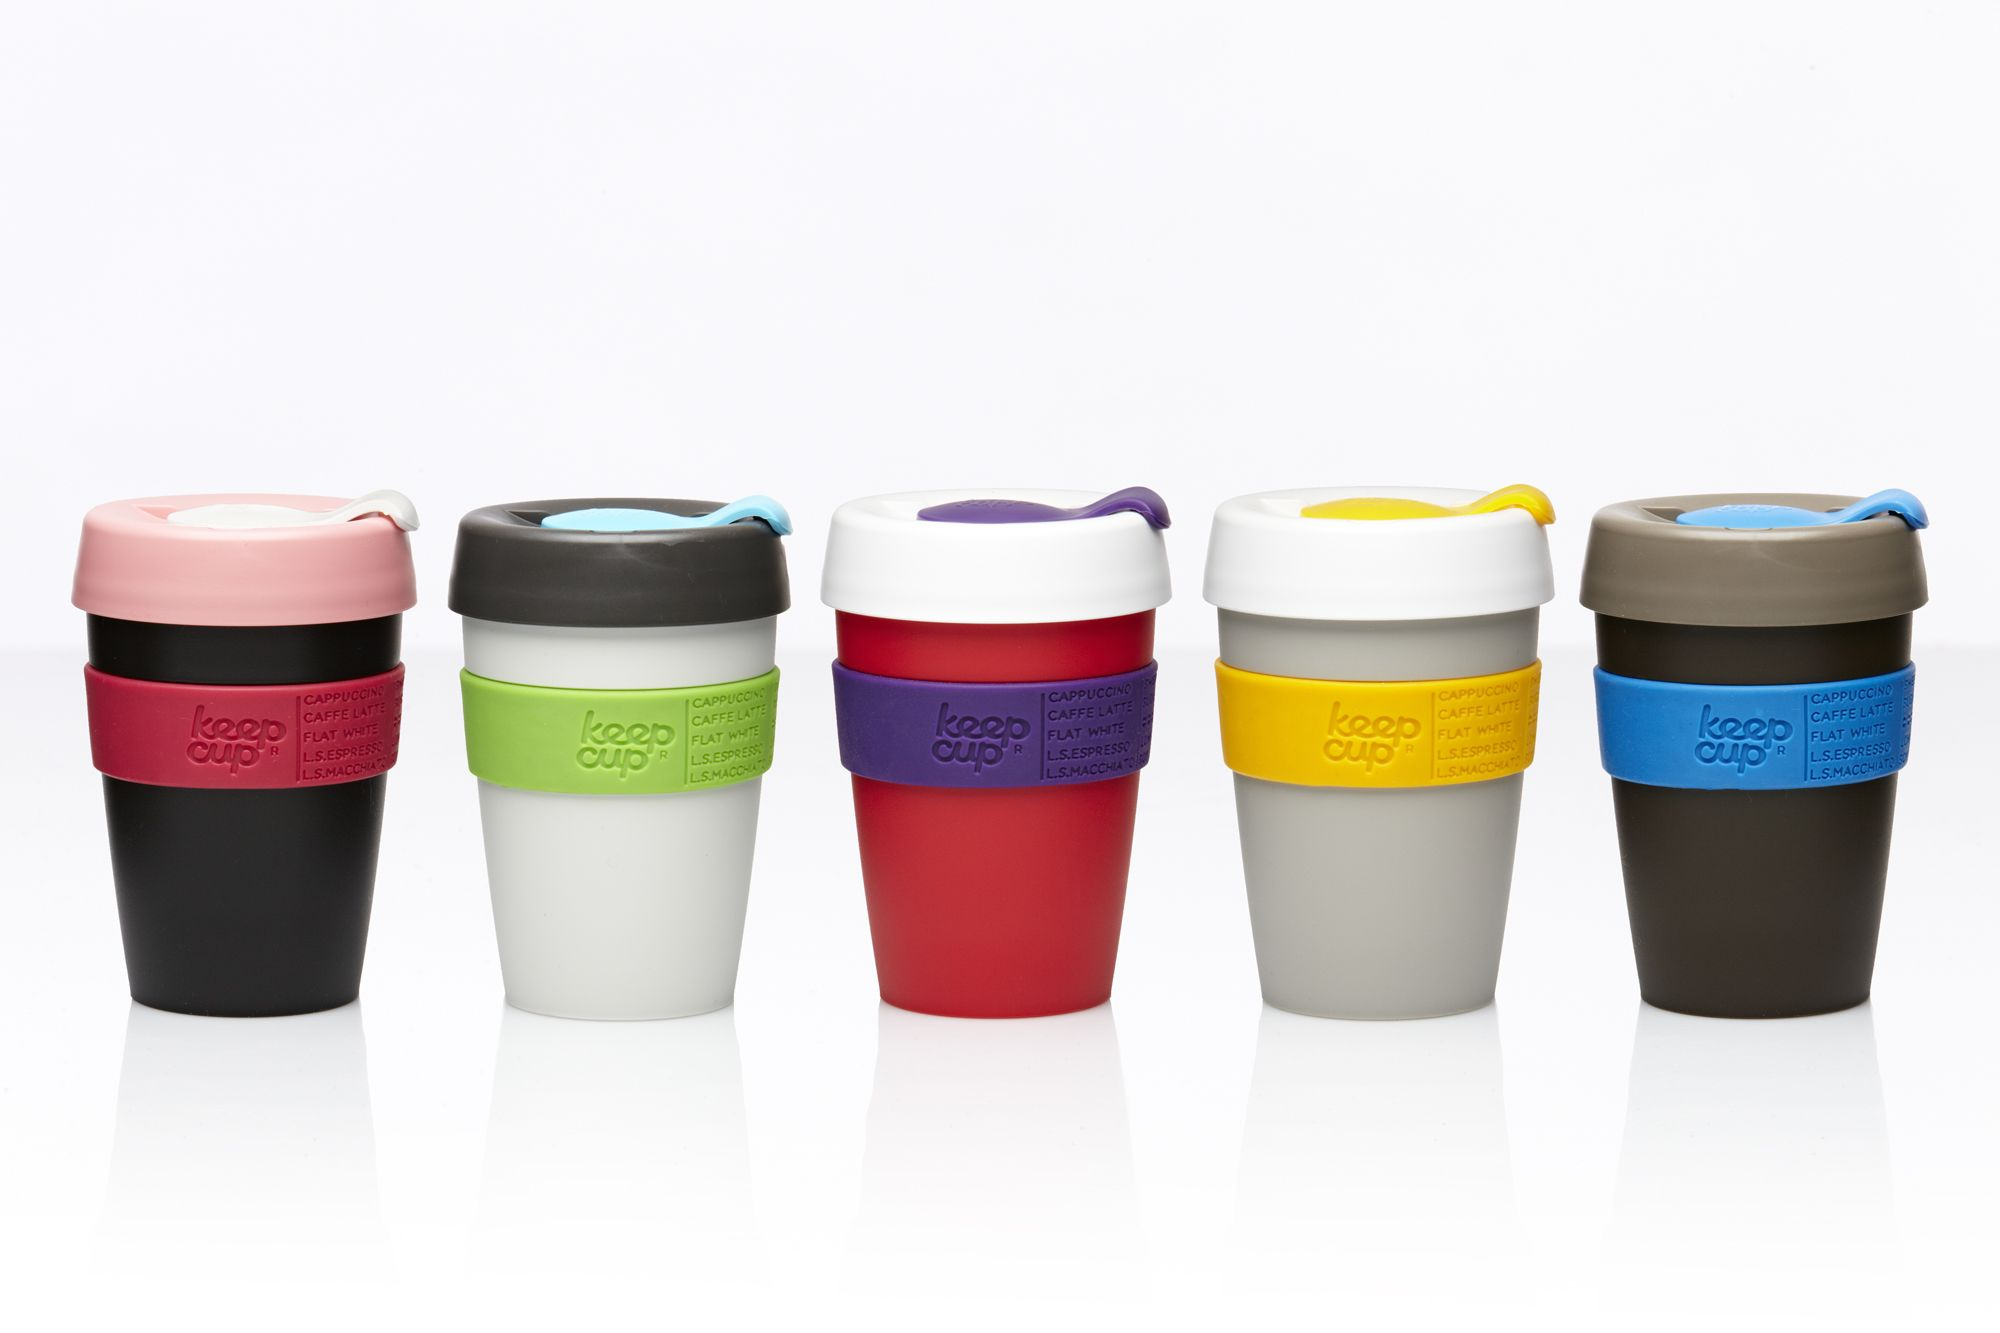 KeepCup is the perfect coffee mug. It looks like disposable cup of coffee, keeps your coffee warmer for longer, is anti-spill, and is eco-friendly!